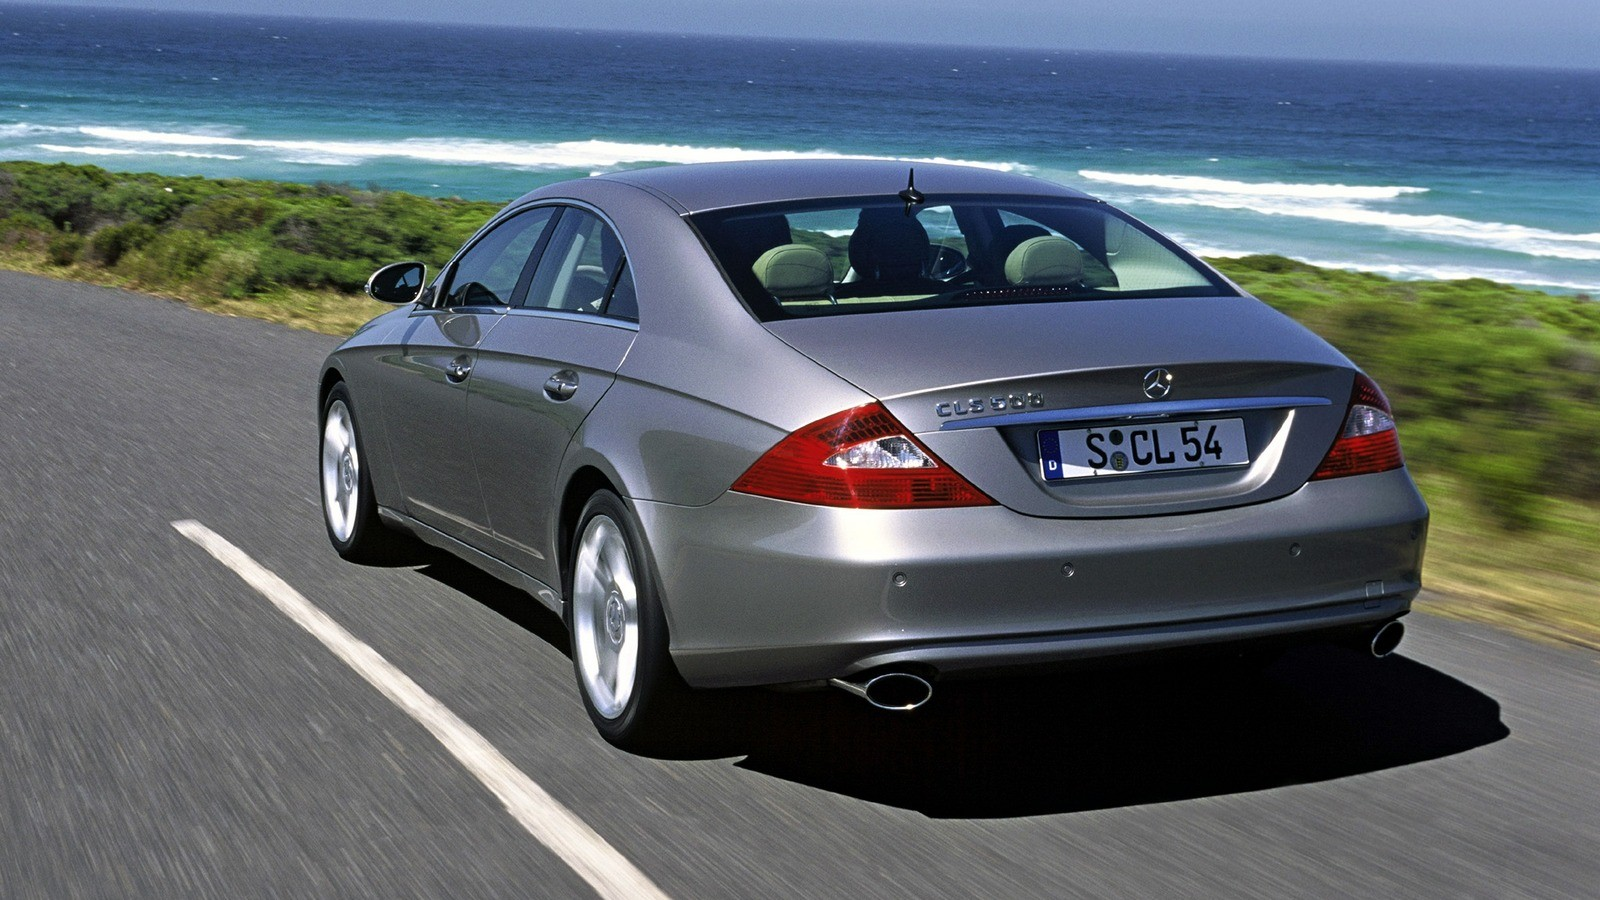 Mercedes-Benz CLS 500 Worldwide (С219) '2004–07.2010